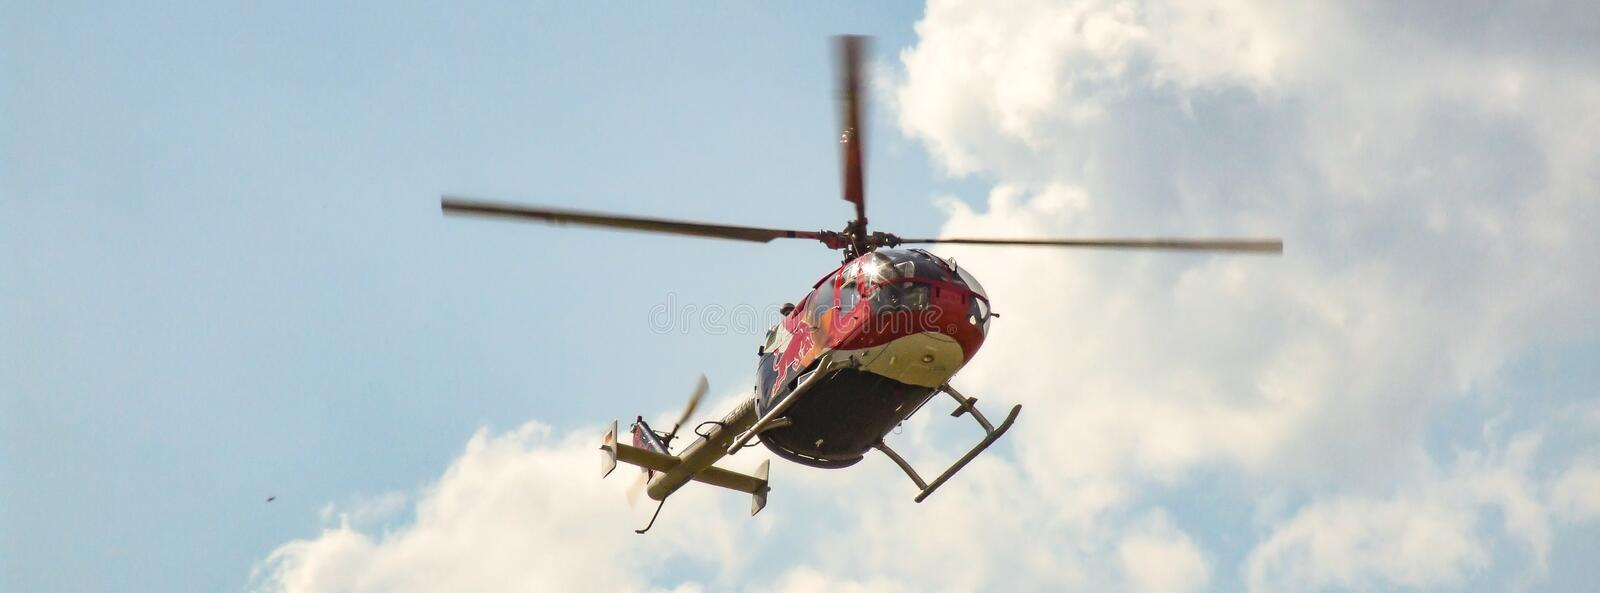 Eurocopter MBB Bo-105 of The Flying Bulls in flight. D-HTDM. Sunny cloudy sky in the background.Photo in facebook background format. Helicopter located in the royalty free stock photography